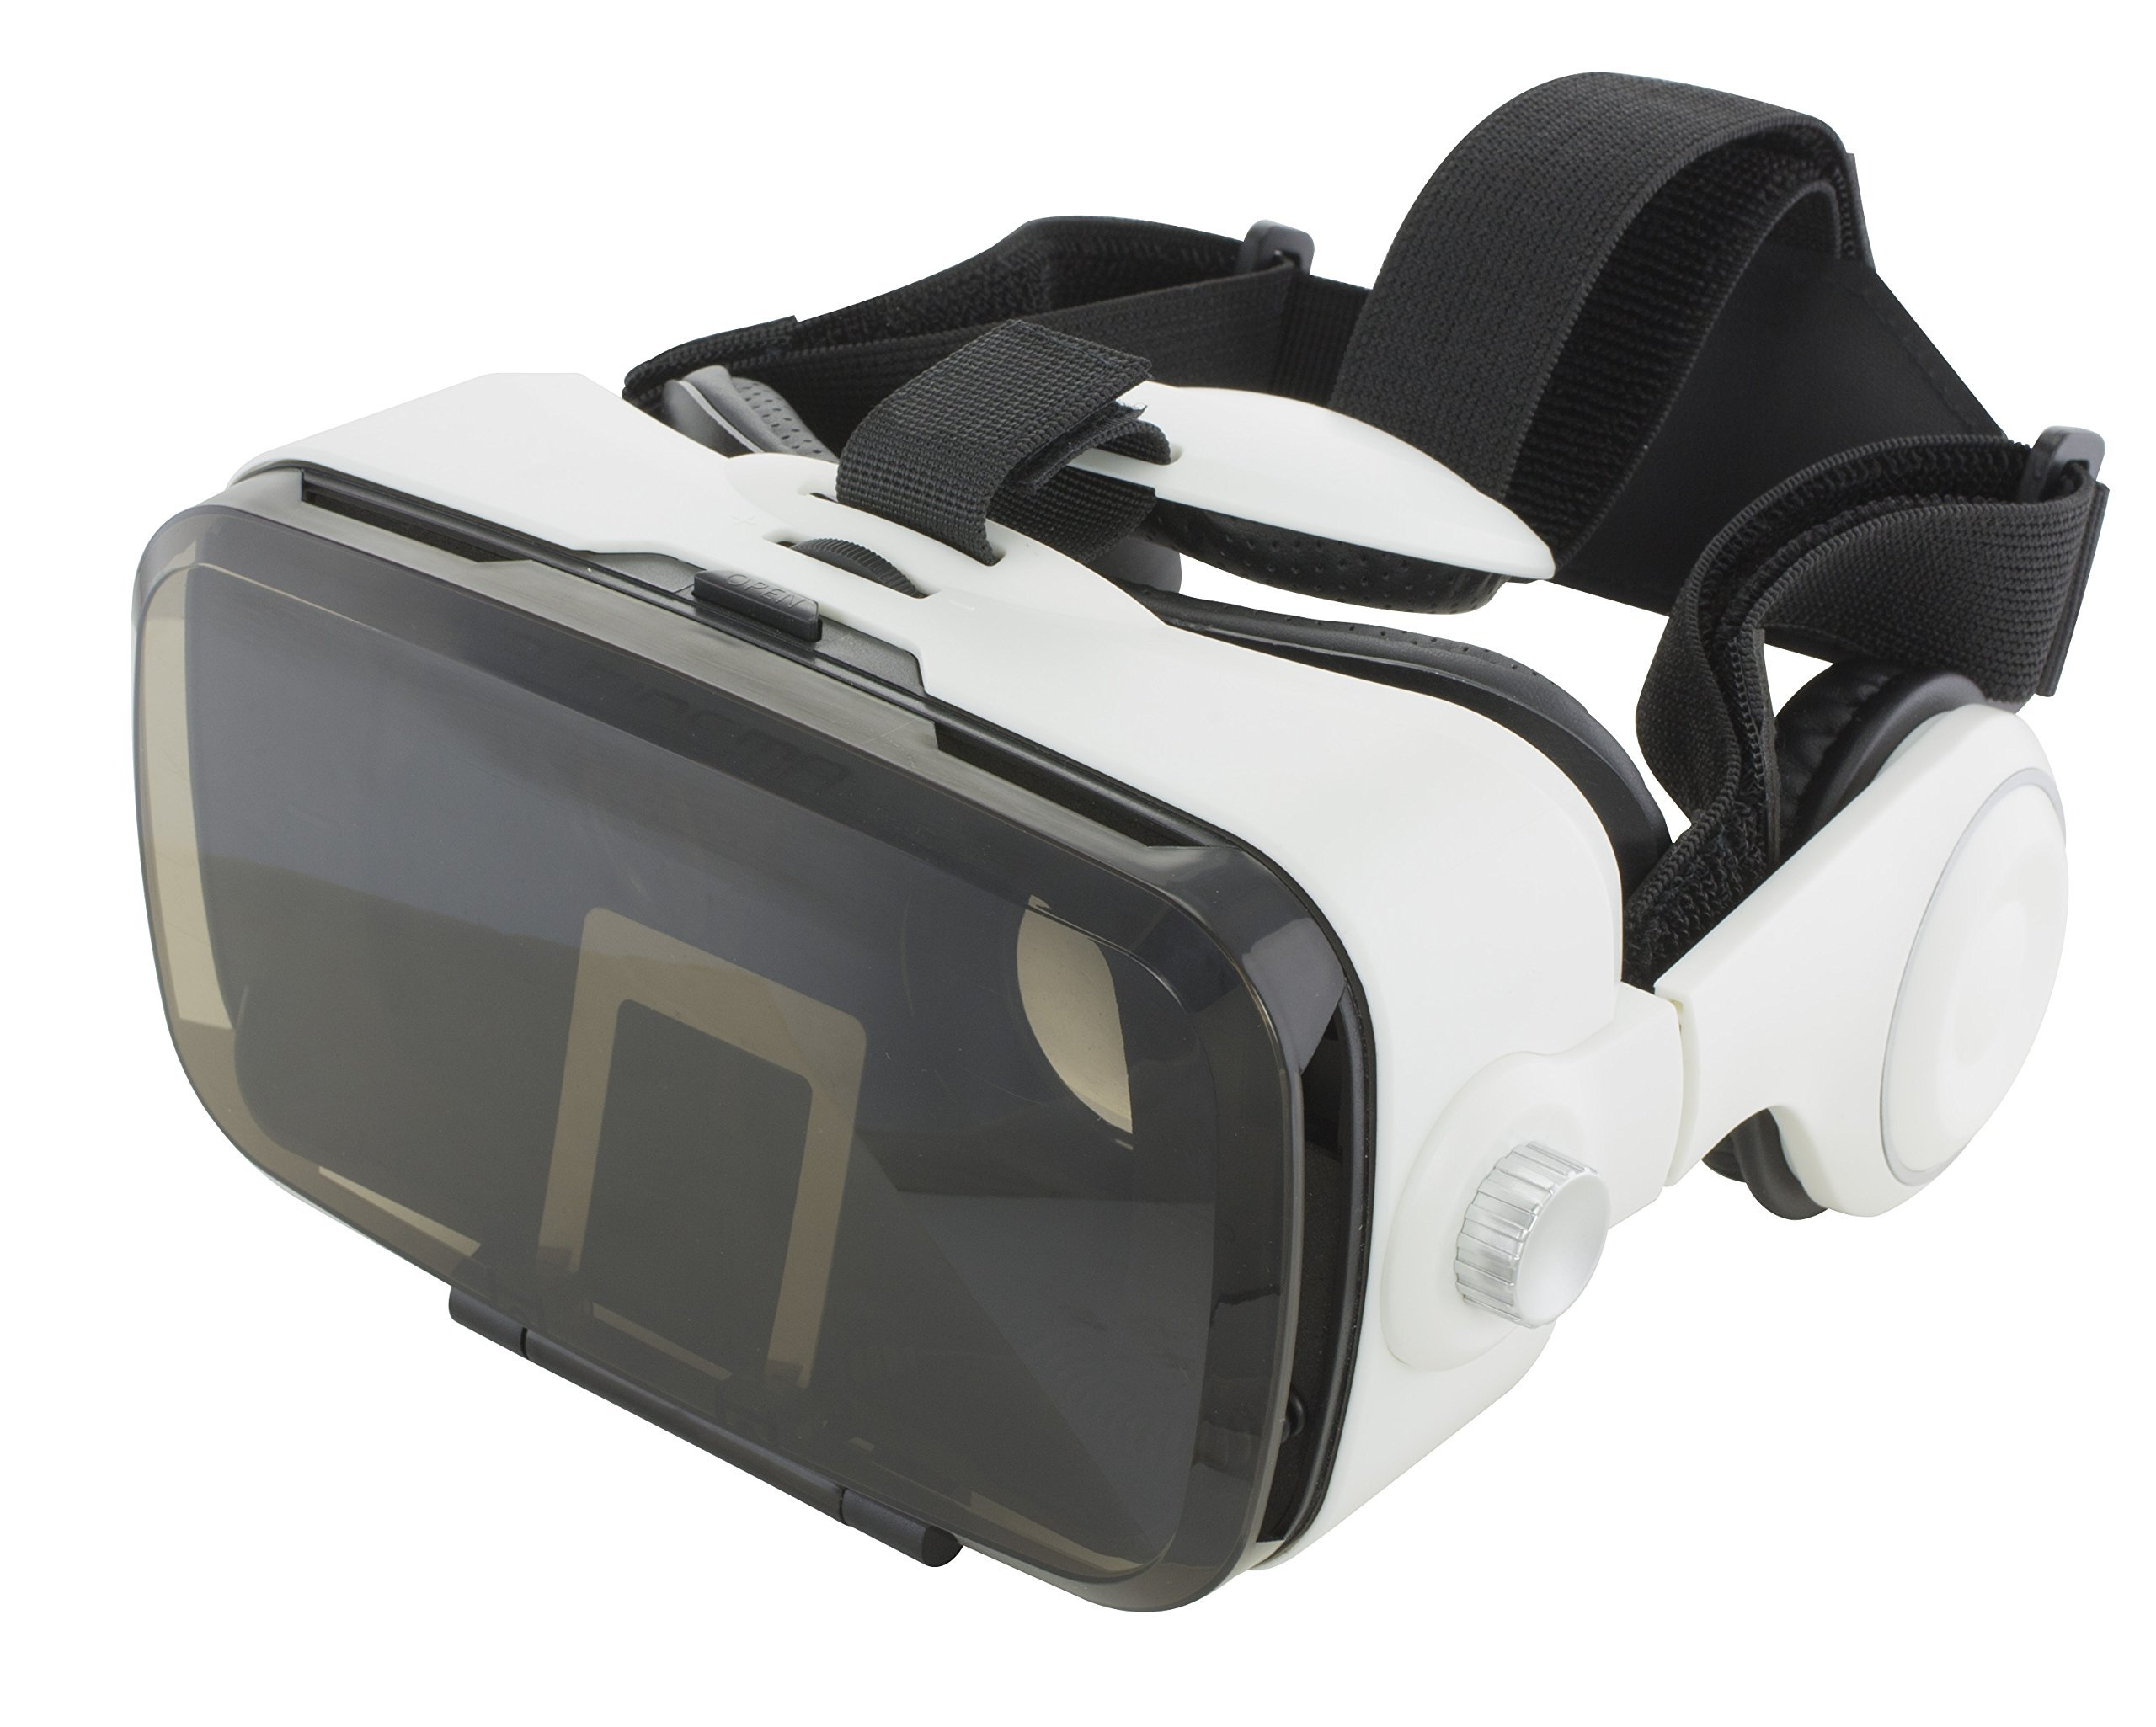 VR Headset with Remote and Built-in Headphones